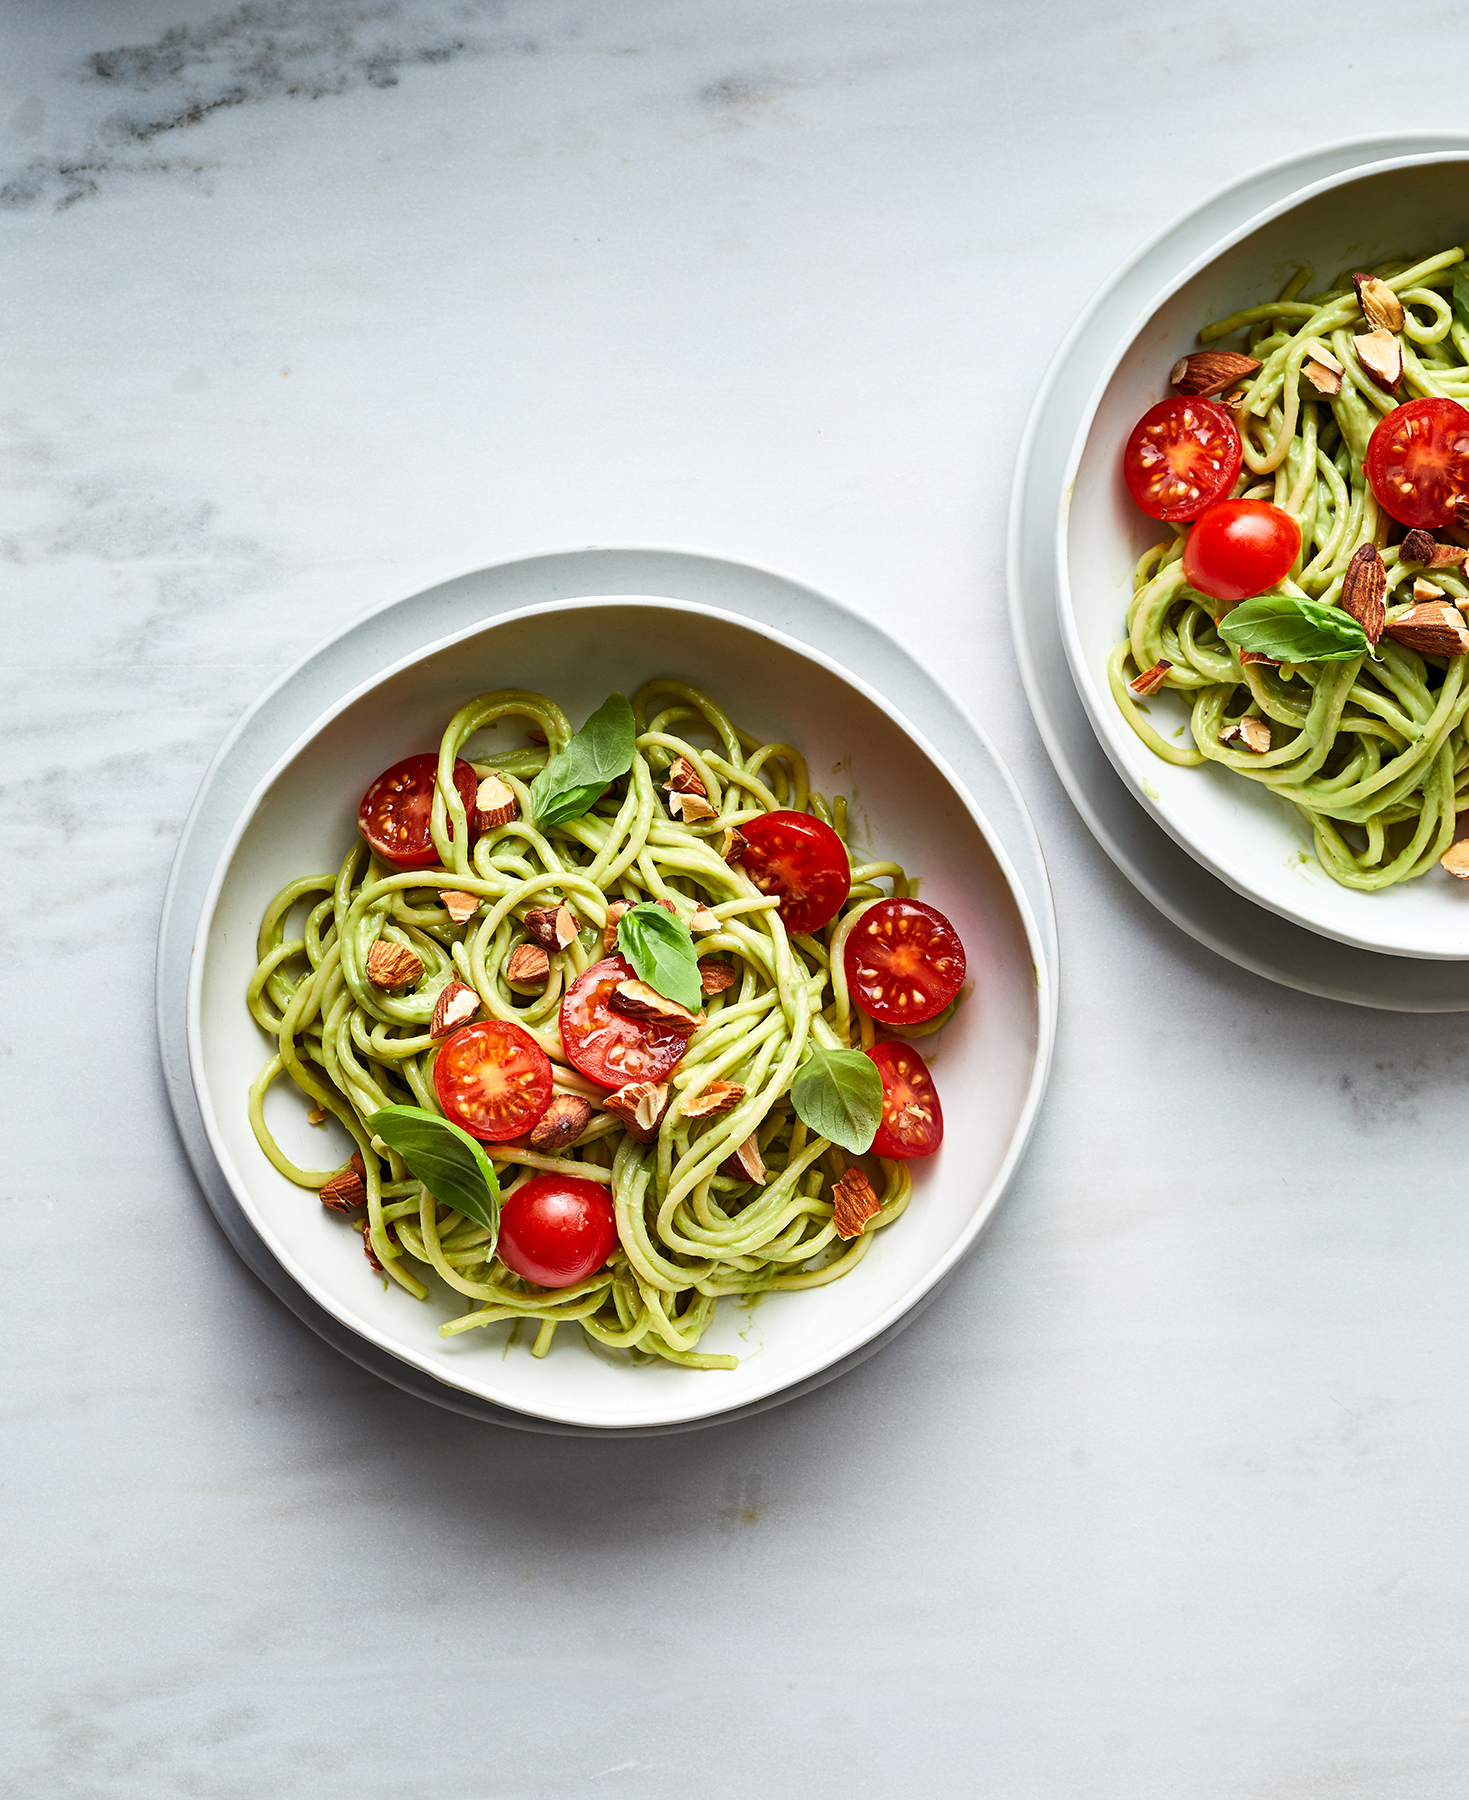 Spaghetti Salad With Avocado and Basil